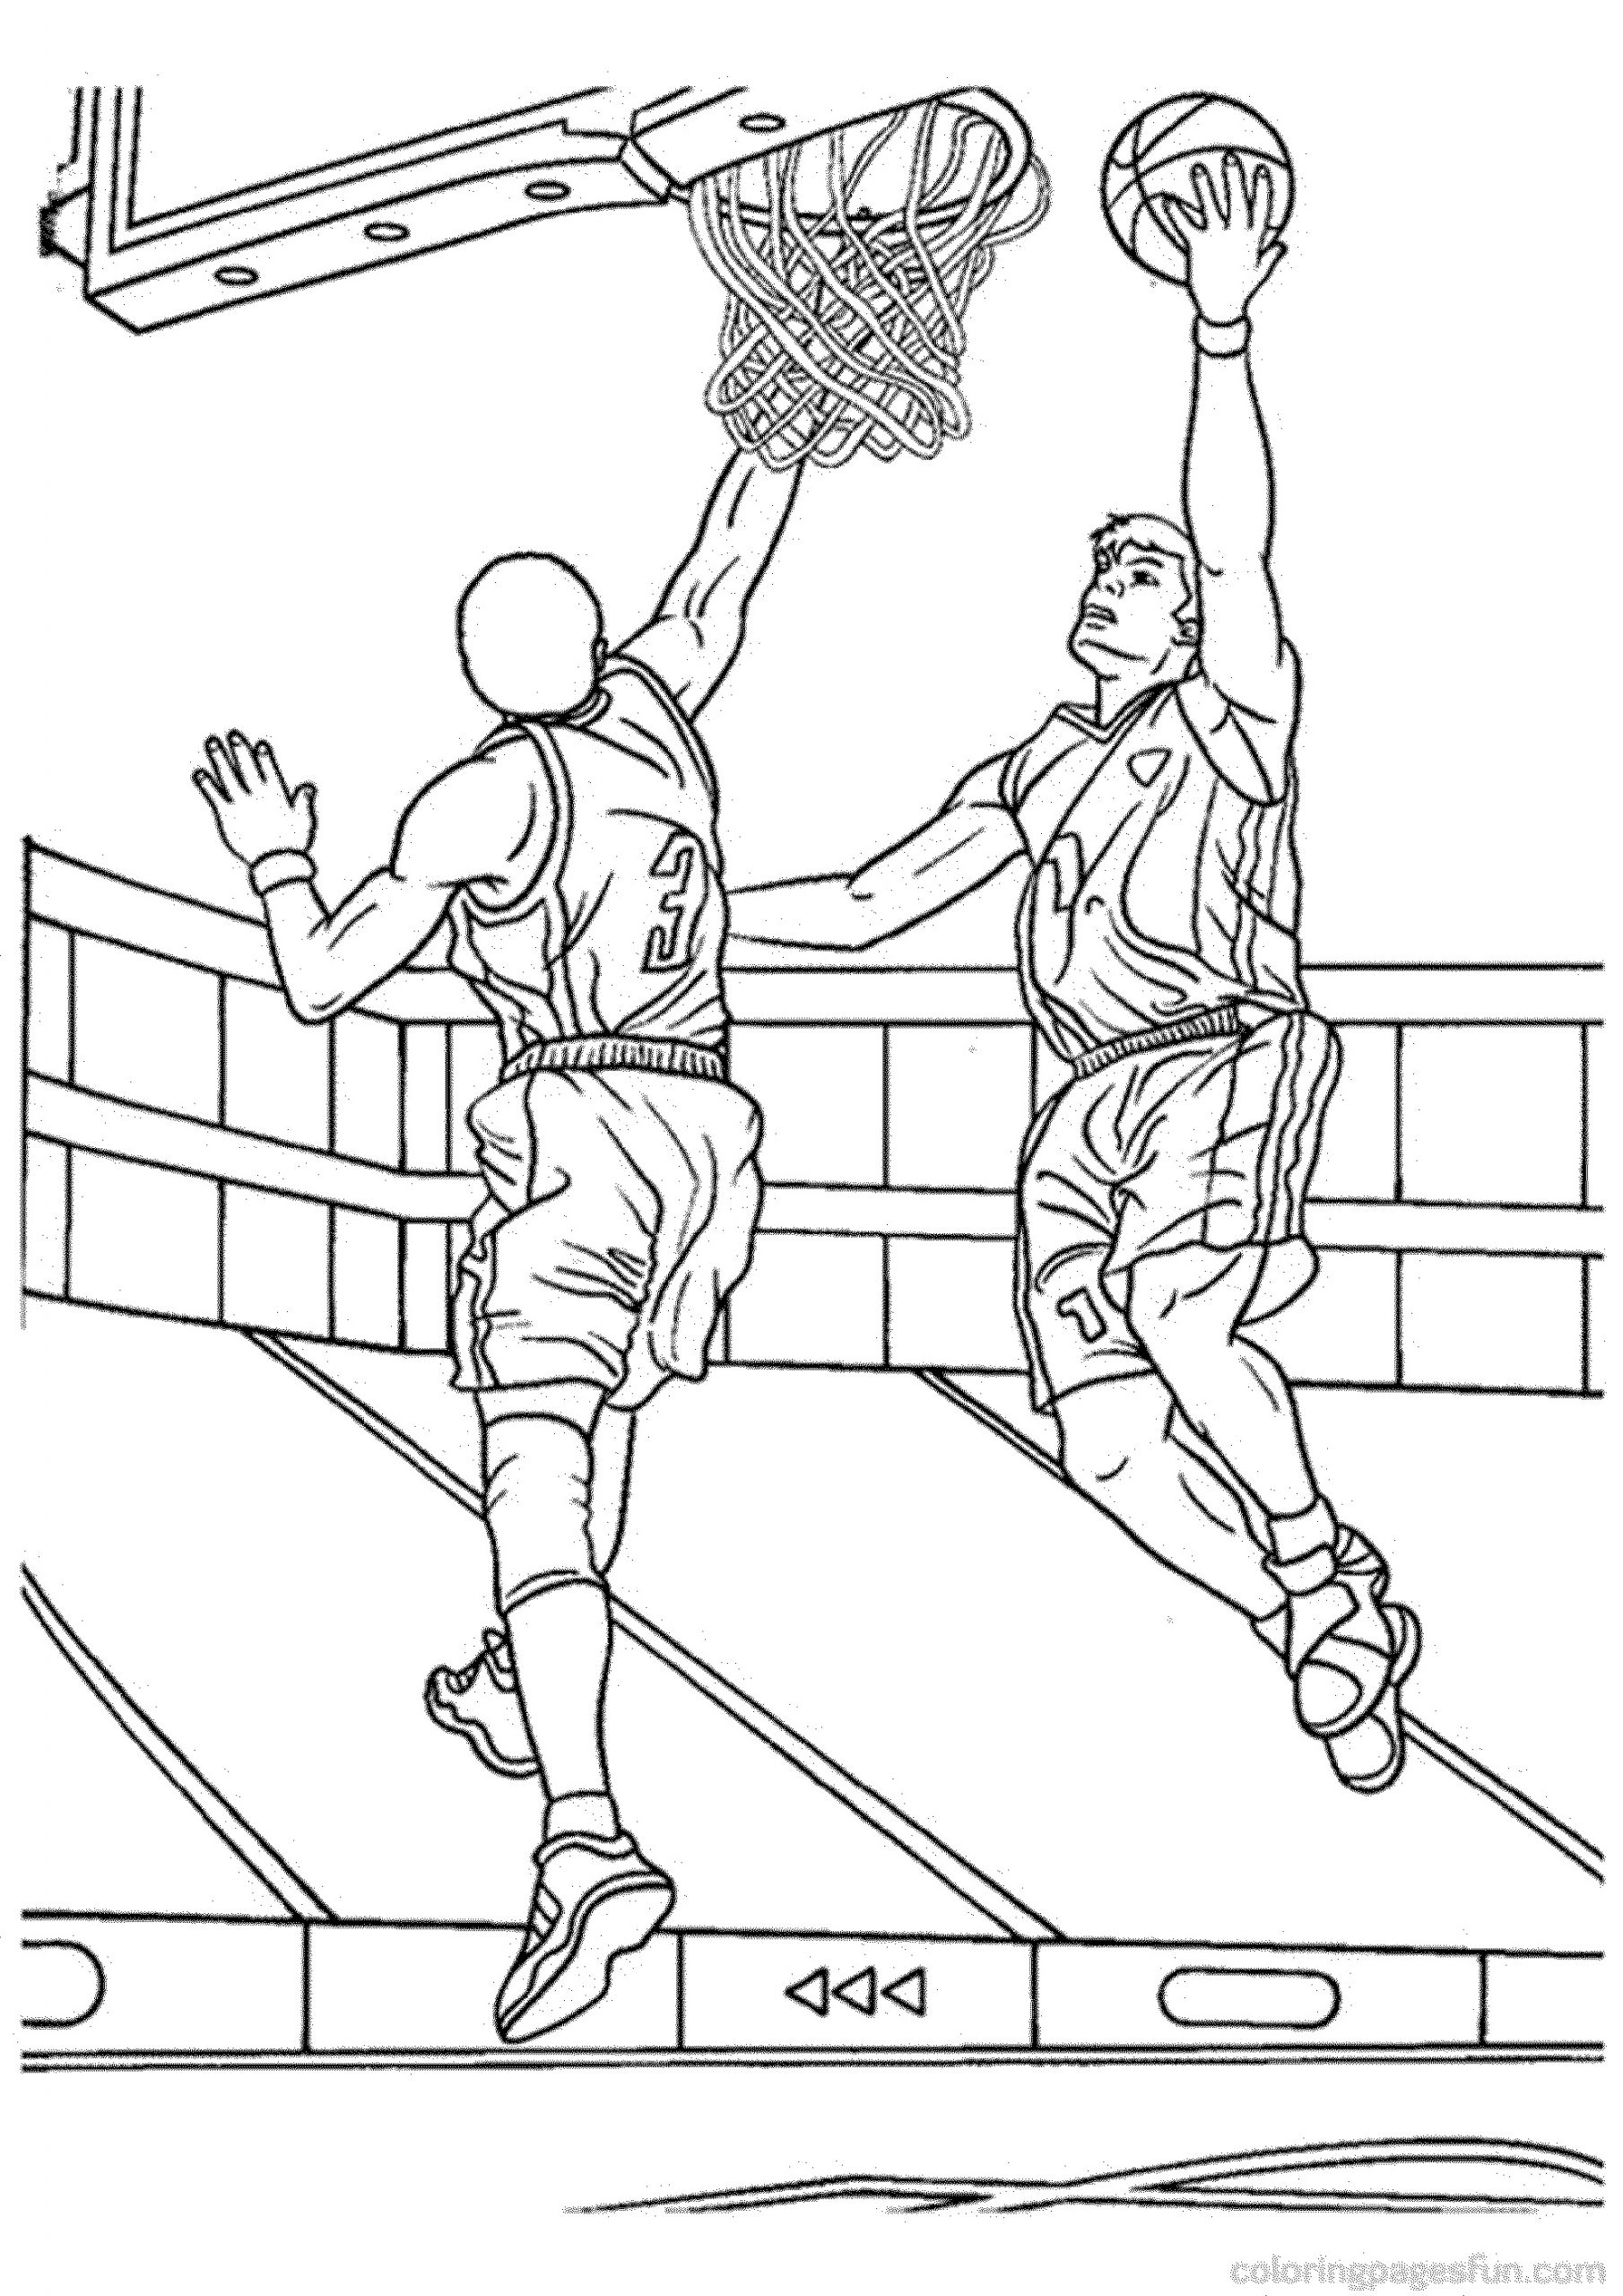 basketball pictures to color basketball free to color for kids basketball kids pictures basketball to color